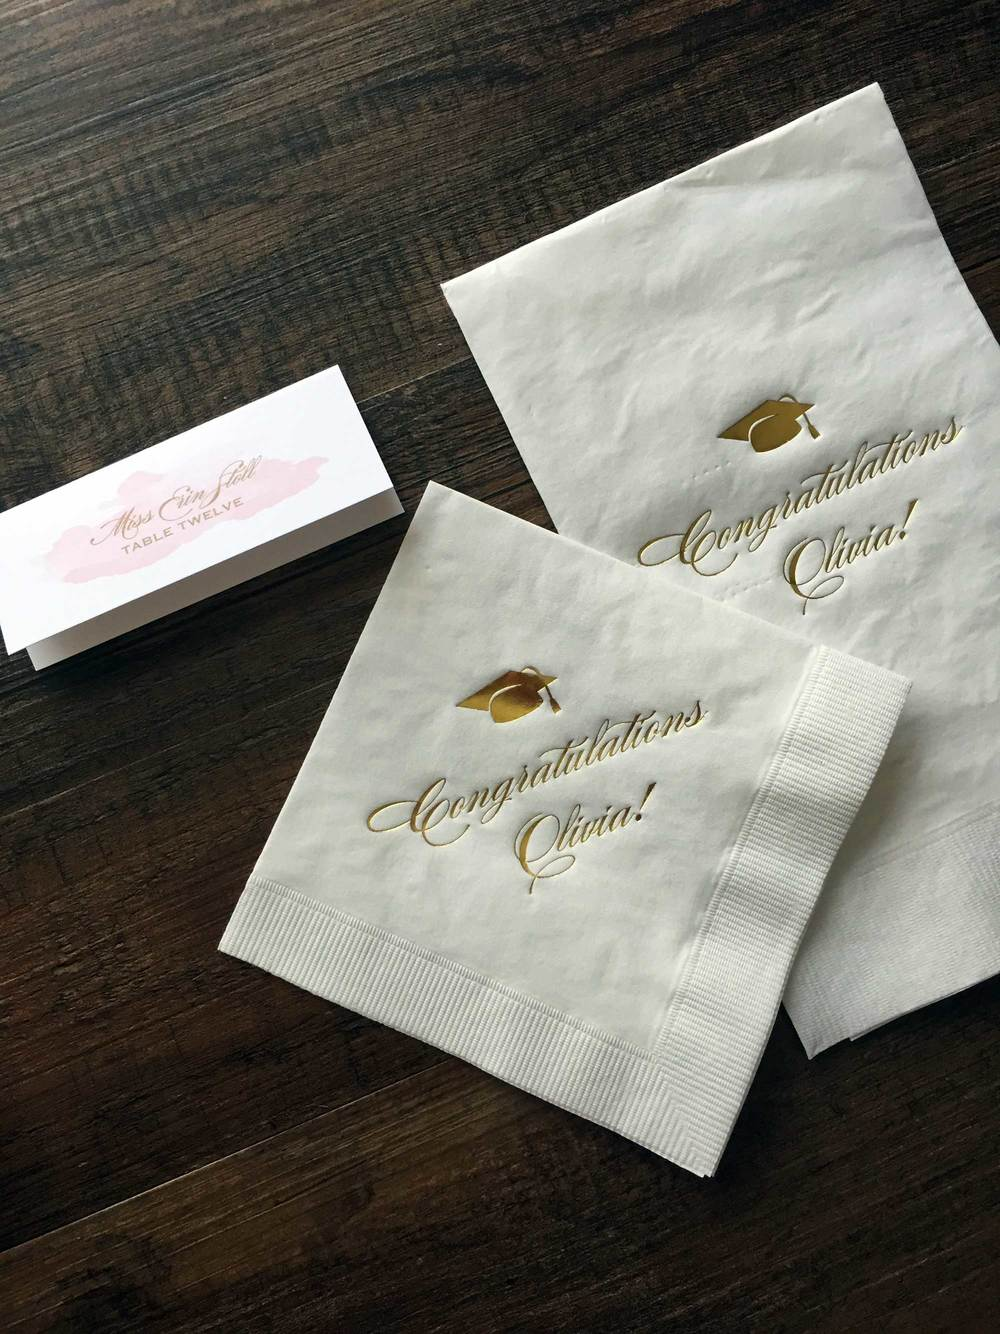 Custom place cards, gold foil cocktail napkins and guests towels.